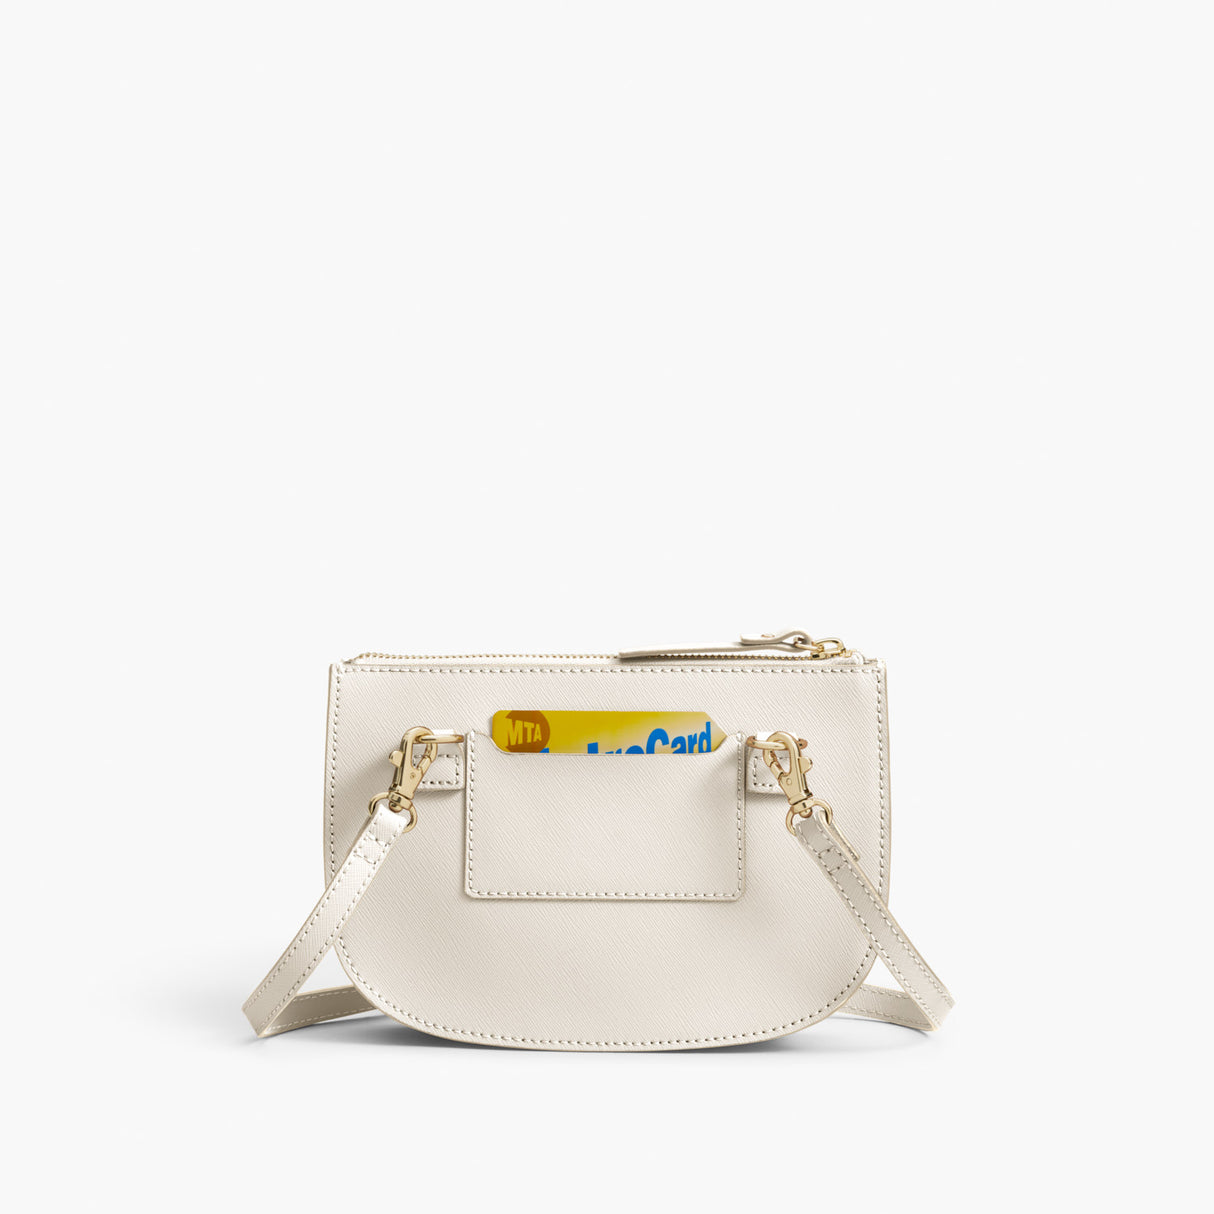 Back Crossbody - The Waverley 2 - Saffiano Leather - Ivory / Gold / Camel - Crossbody - Lo & Sons